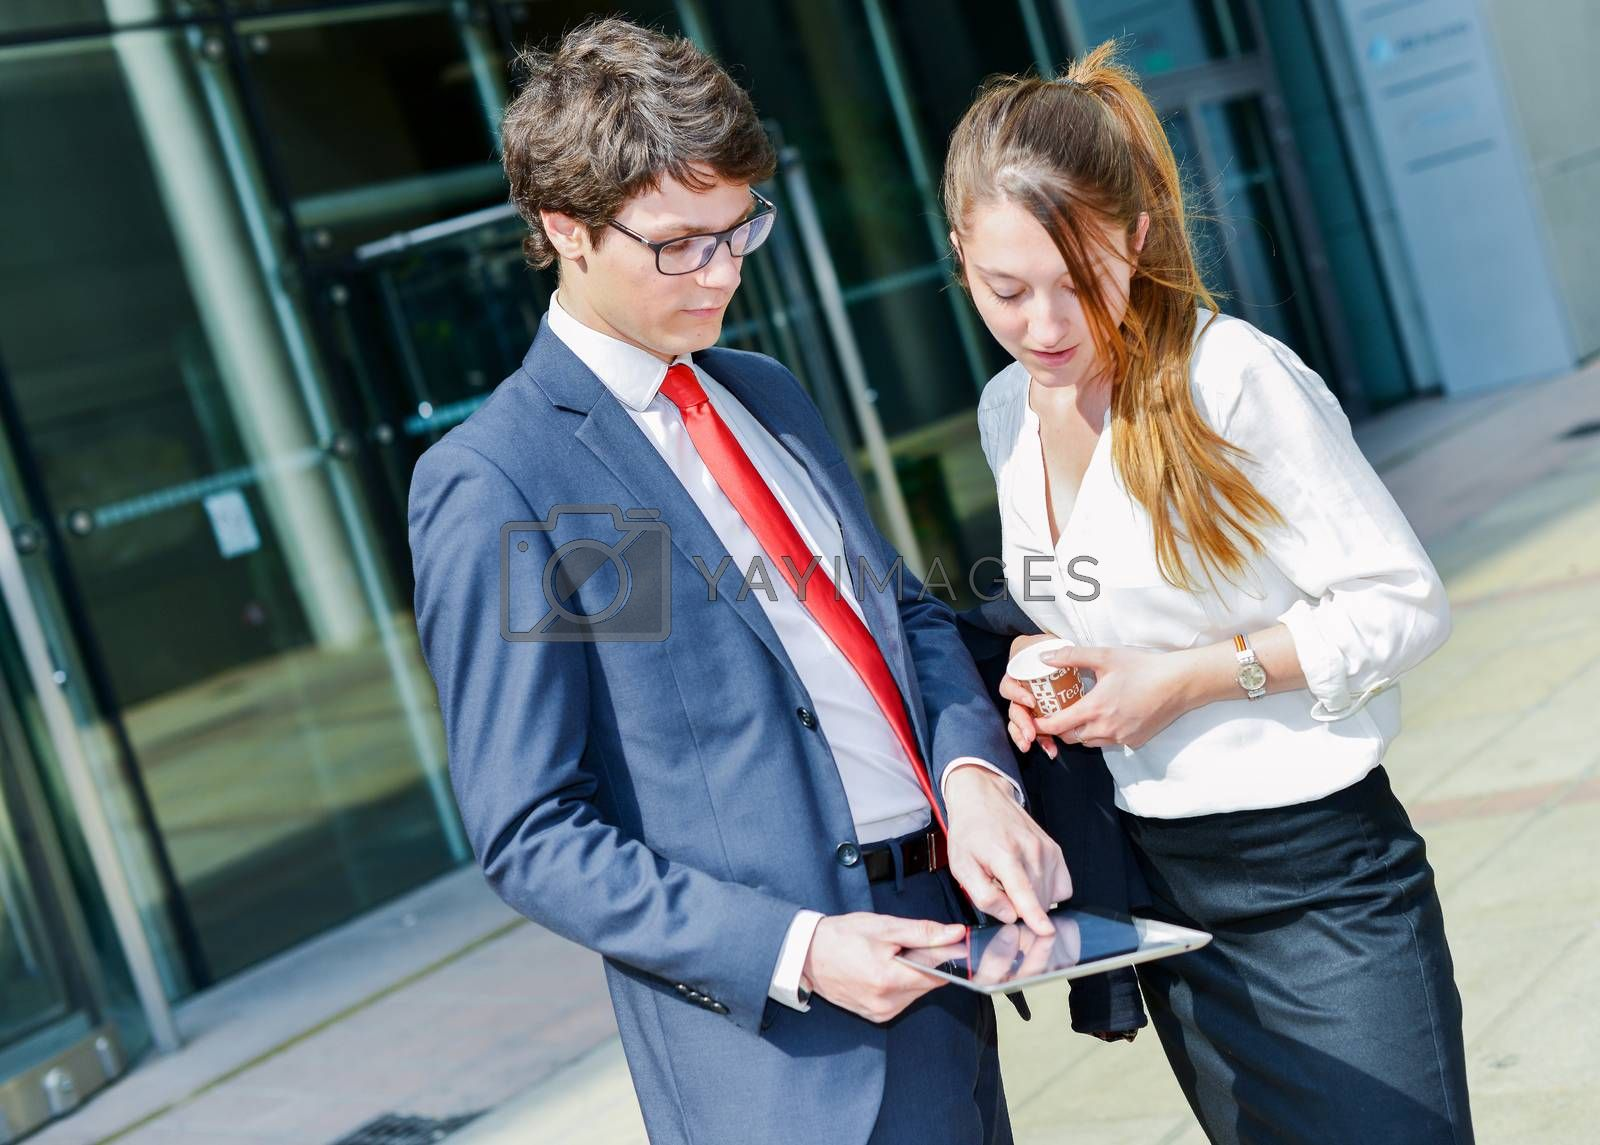 Royalty free image of Junior executives consulting a touchpad in front of their company by pixinoo